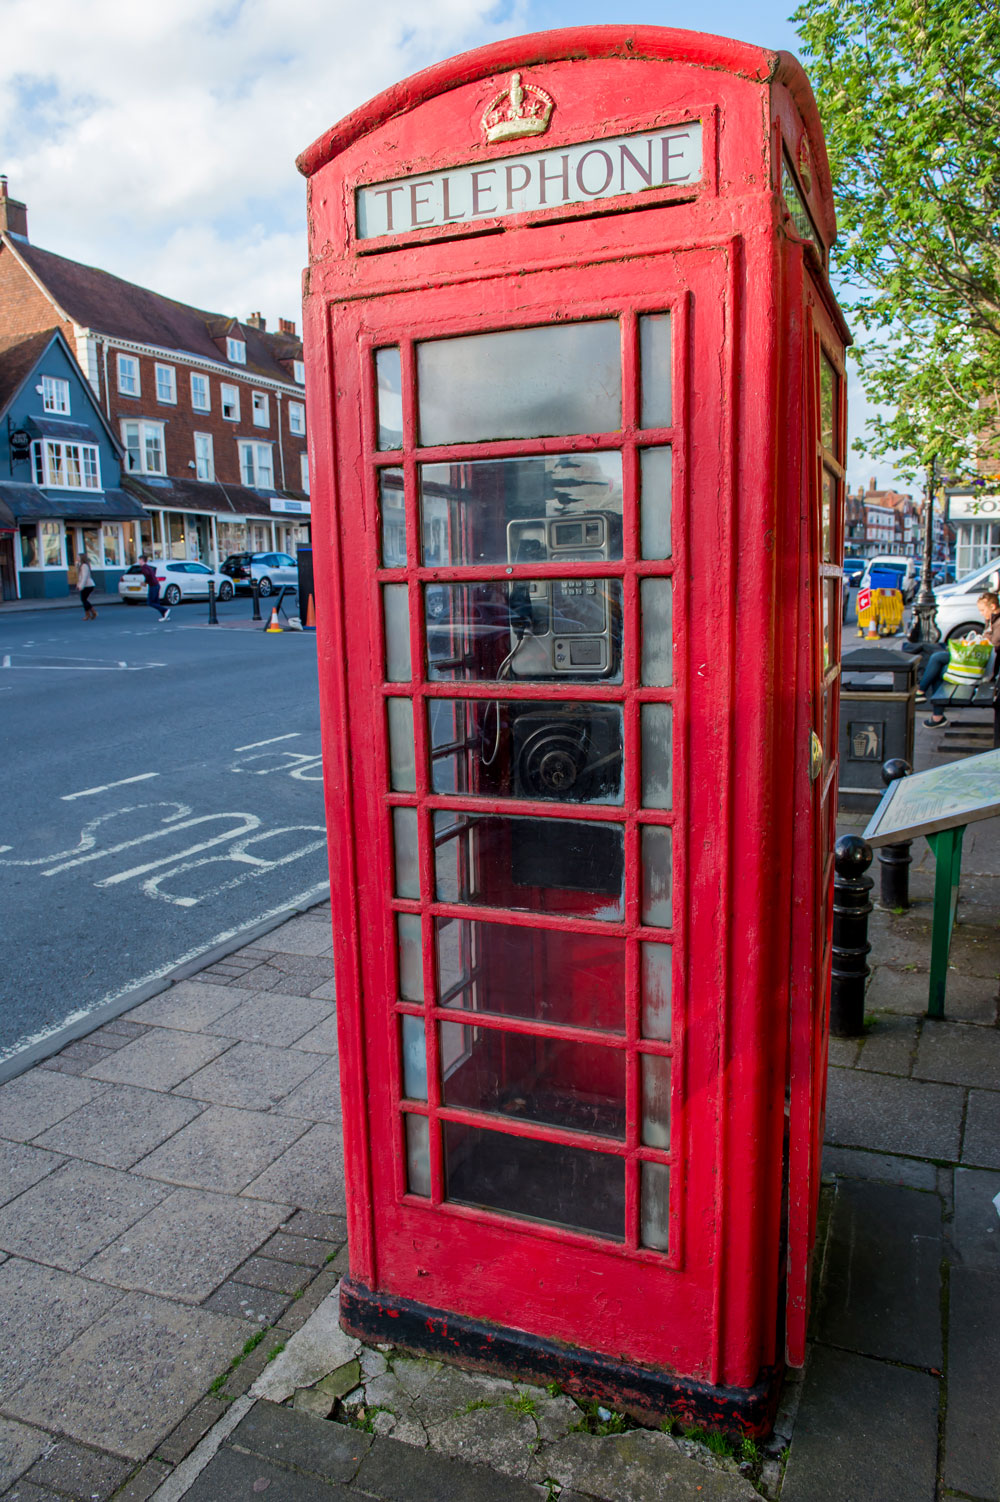 Telephone Box outside the Jubilee Centre in the High Street - in a state of disrepair